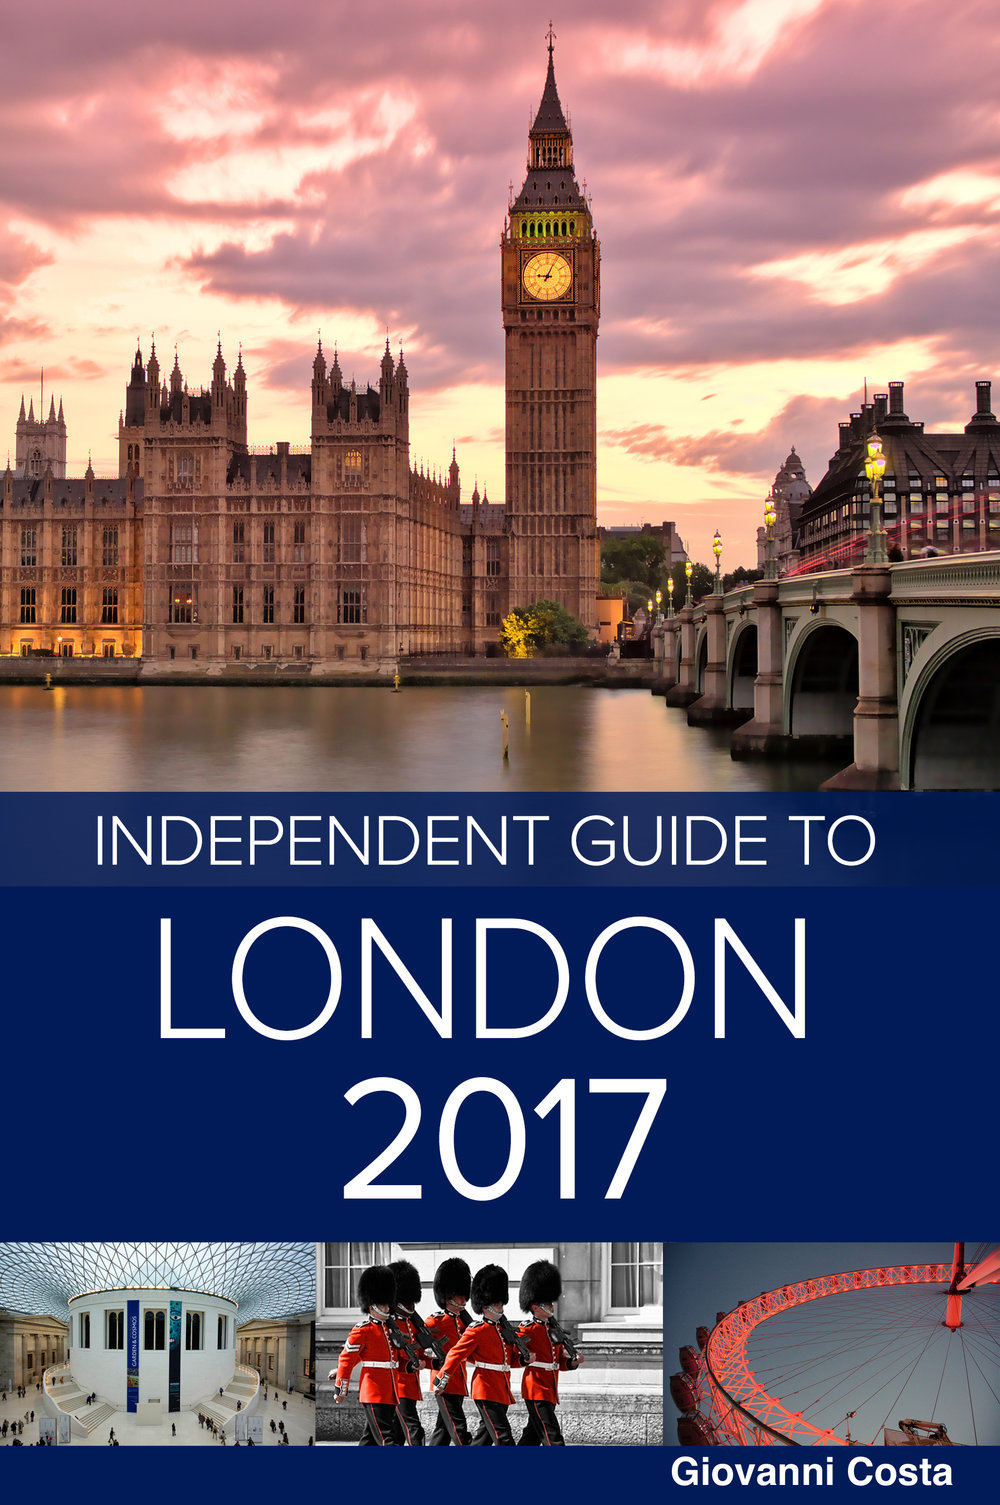 independentguidetolondon2017.jpg